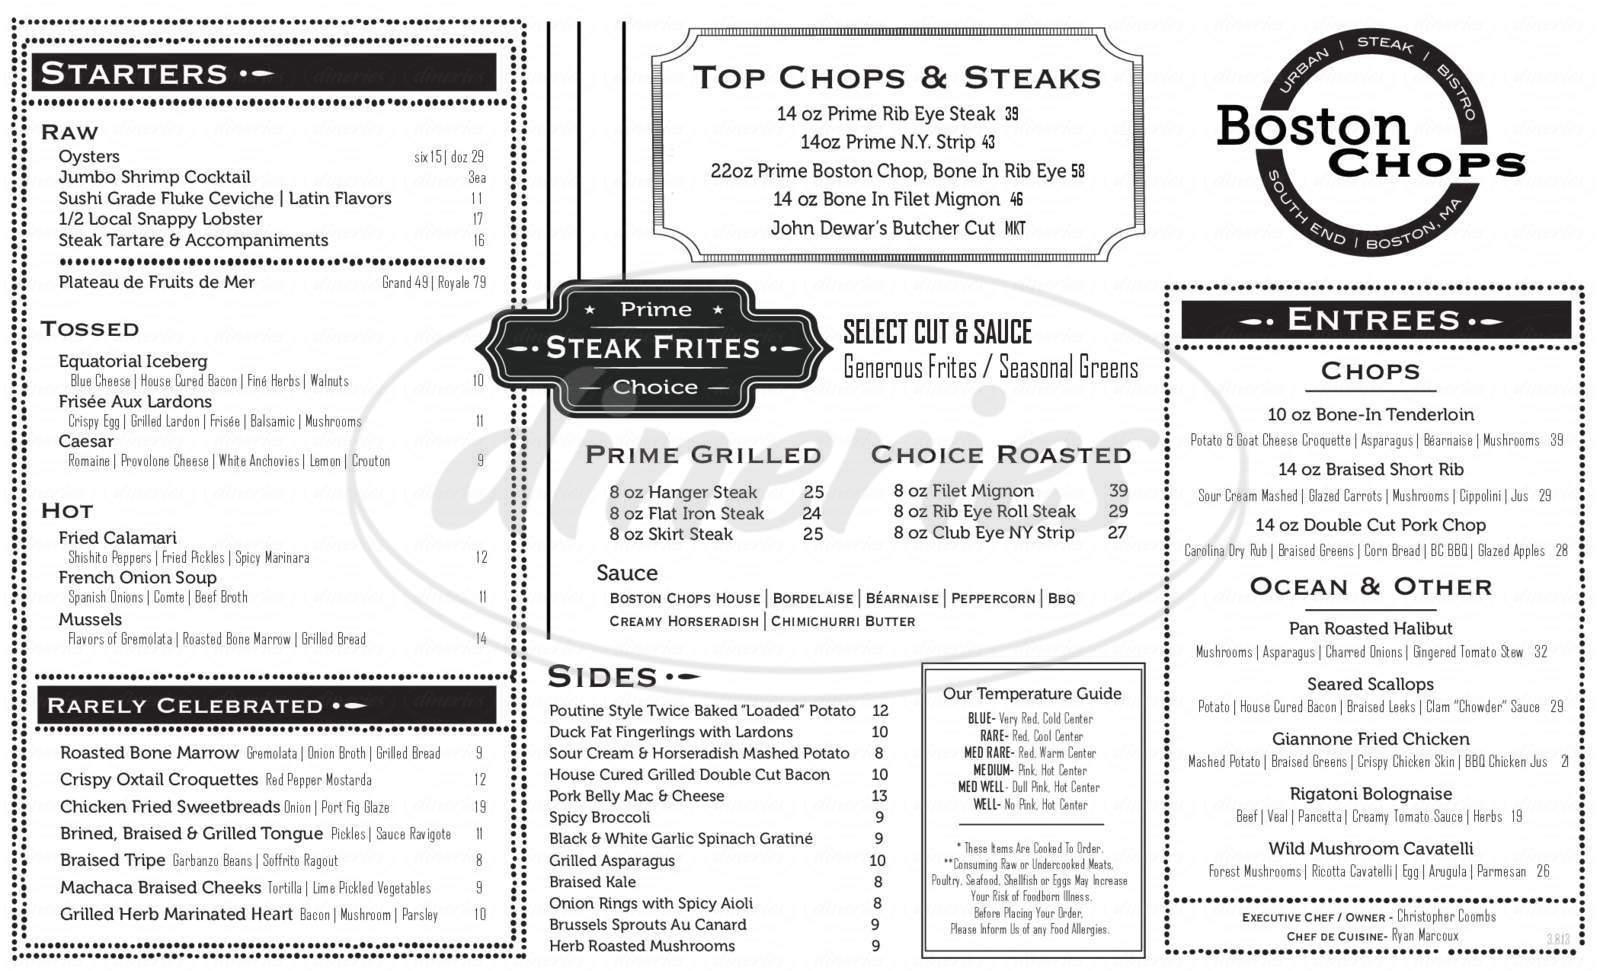 menu for Boston Chops